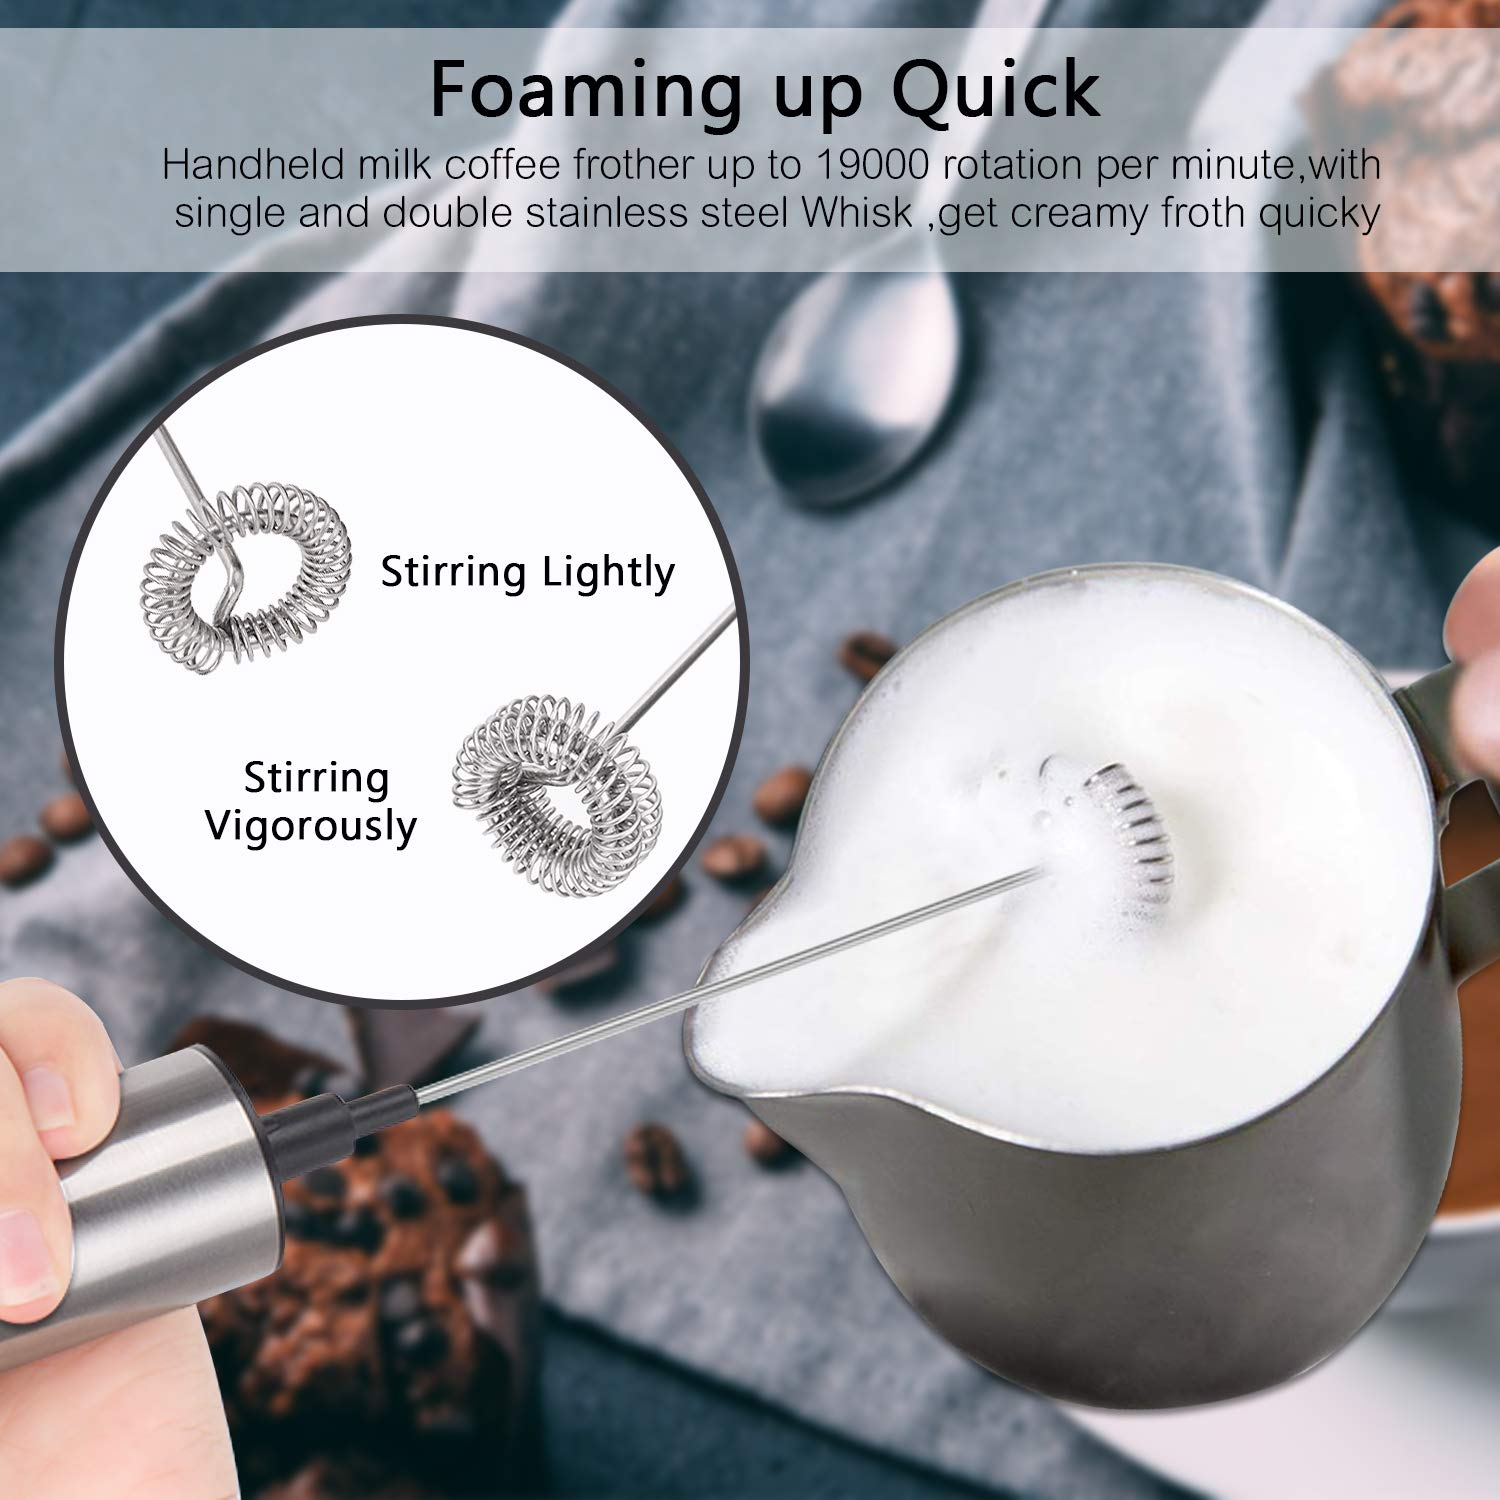 Portable Milk Frother, PEMOTech [3 in 1] Electric Milk Forther with Mix Spoon & 16 PCS Art Stencils, Handheld Frother Foam Maker with Double & Single Spring Whisk Head for Coffee, Cappuccino, Latte by PEMOTech (Image #5)